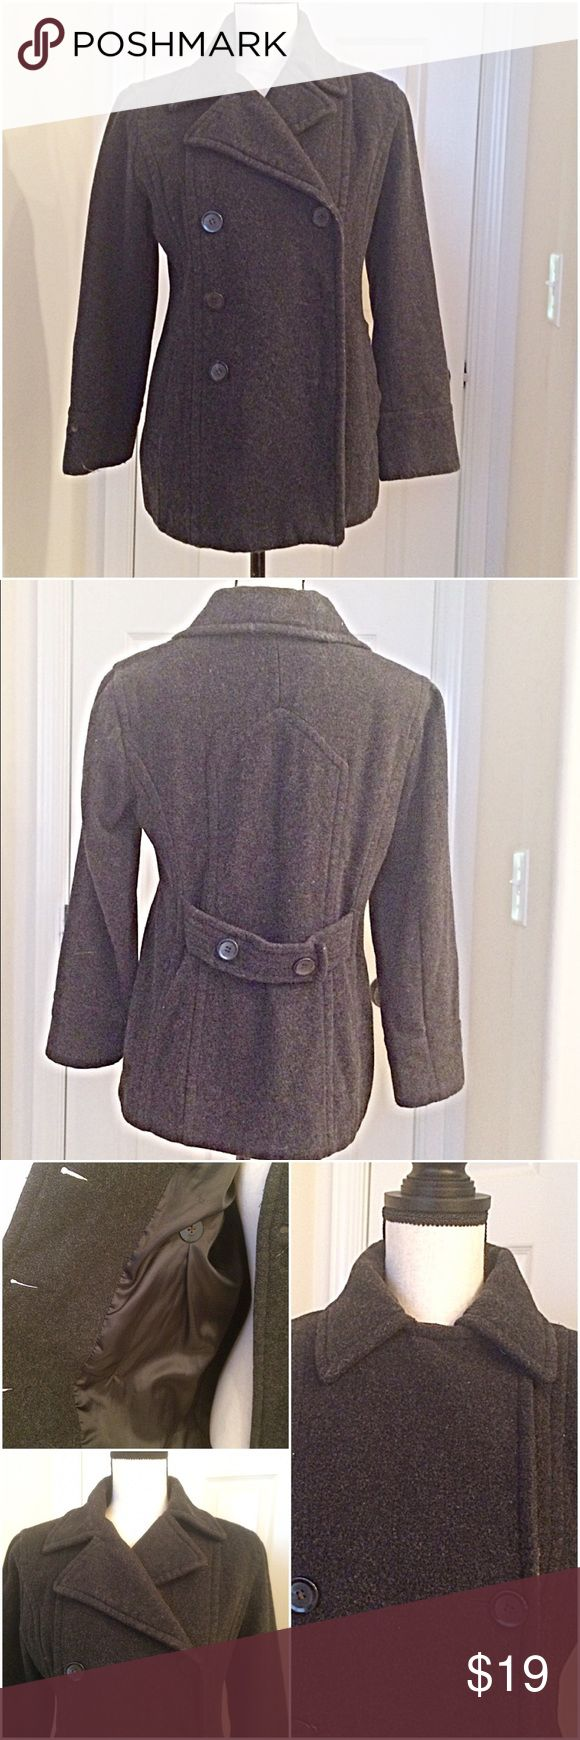 """""""SONOMA"""" Ladies Jacket size Small Dusky Black This Sonoma double breasted ladies short coat is fantastic for the fall/winter weather. Double breasted fully lined with 100% polyester & 80% Wool. Nice deep pockets to hold gloves, tissues or something else. It's outgrown for us & has general wear but has a lot of life still in it. Looks awesome on. Very feminine. Hangs about hip length. Missing two buttons   Length from back of neck to bottom: 29"""" Waist laying flat: 19"""" Sleeve ( underarm to…"""